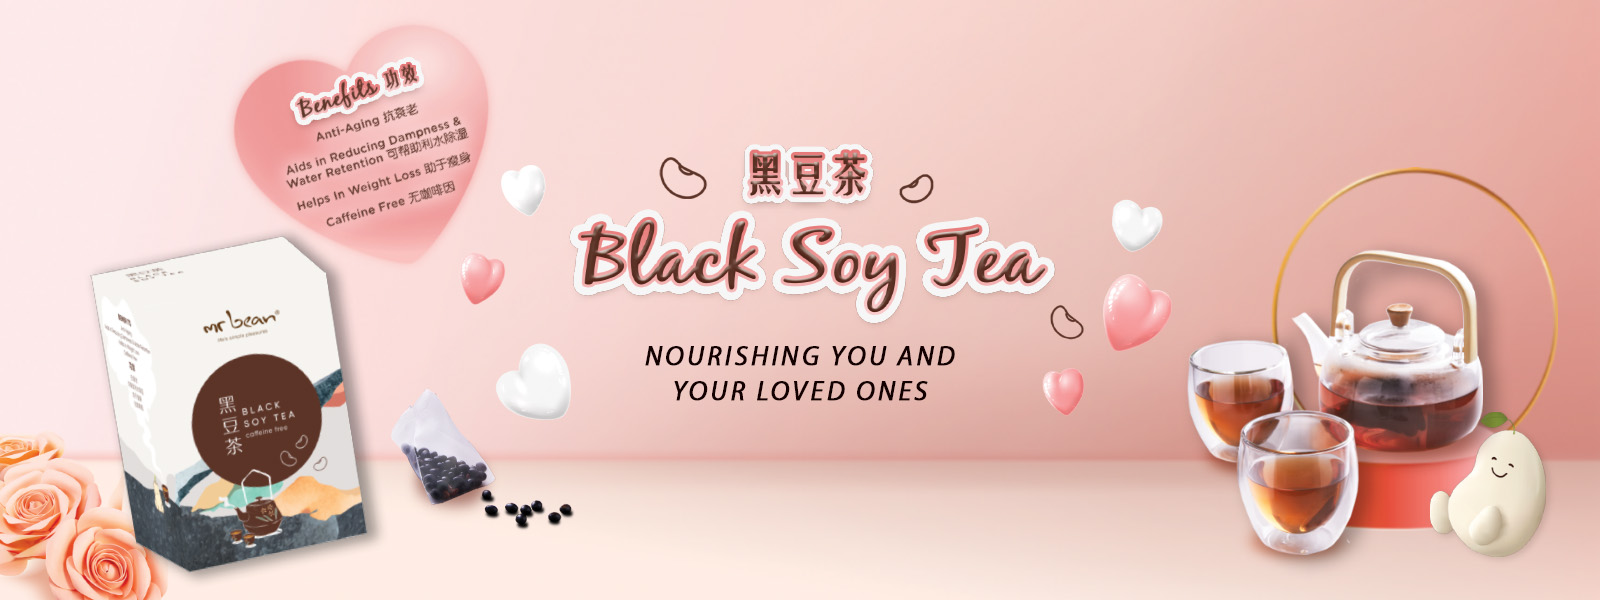 BLACK SOY TEA X MOTHER'S DAY